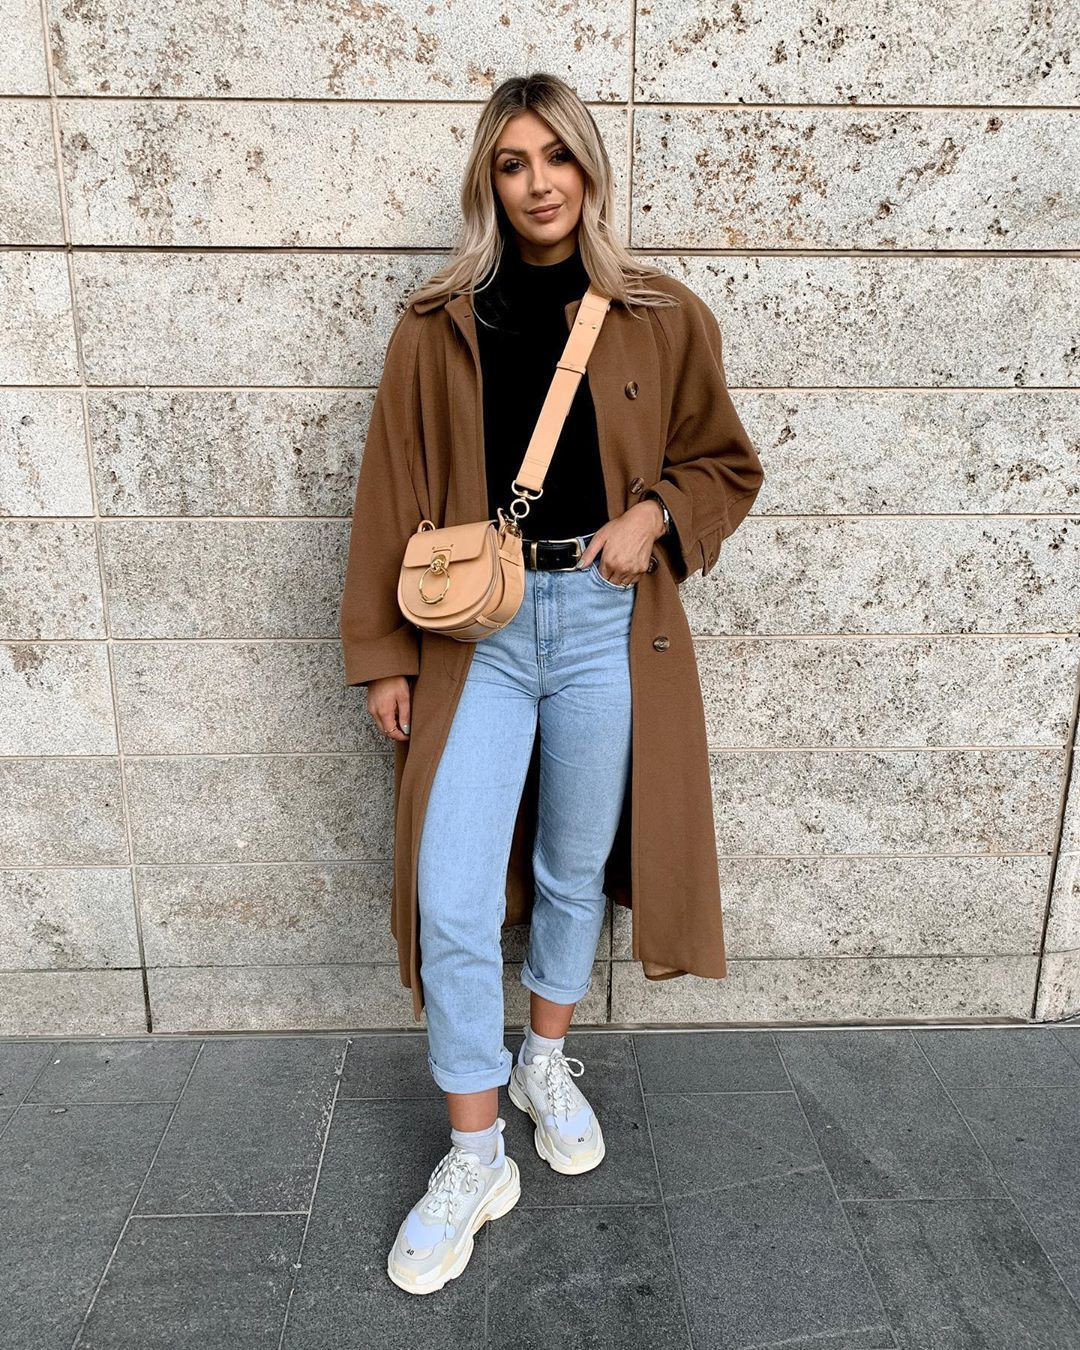 bag crossbody bag sneakers high waisted jeans long coat black turtleneck top